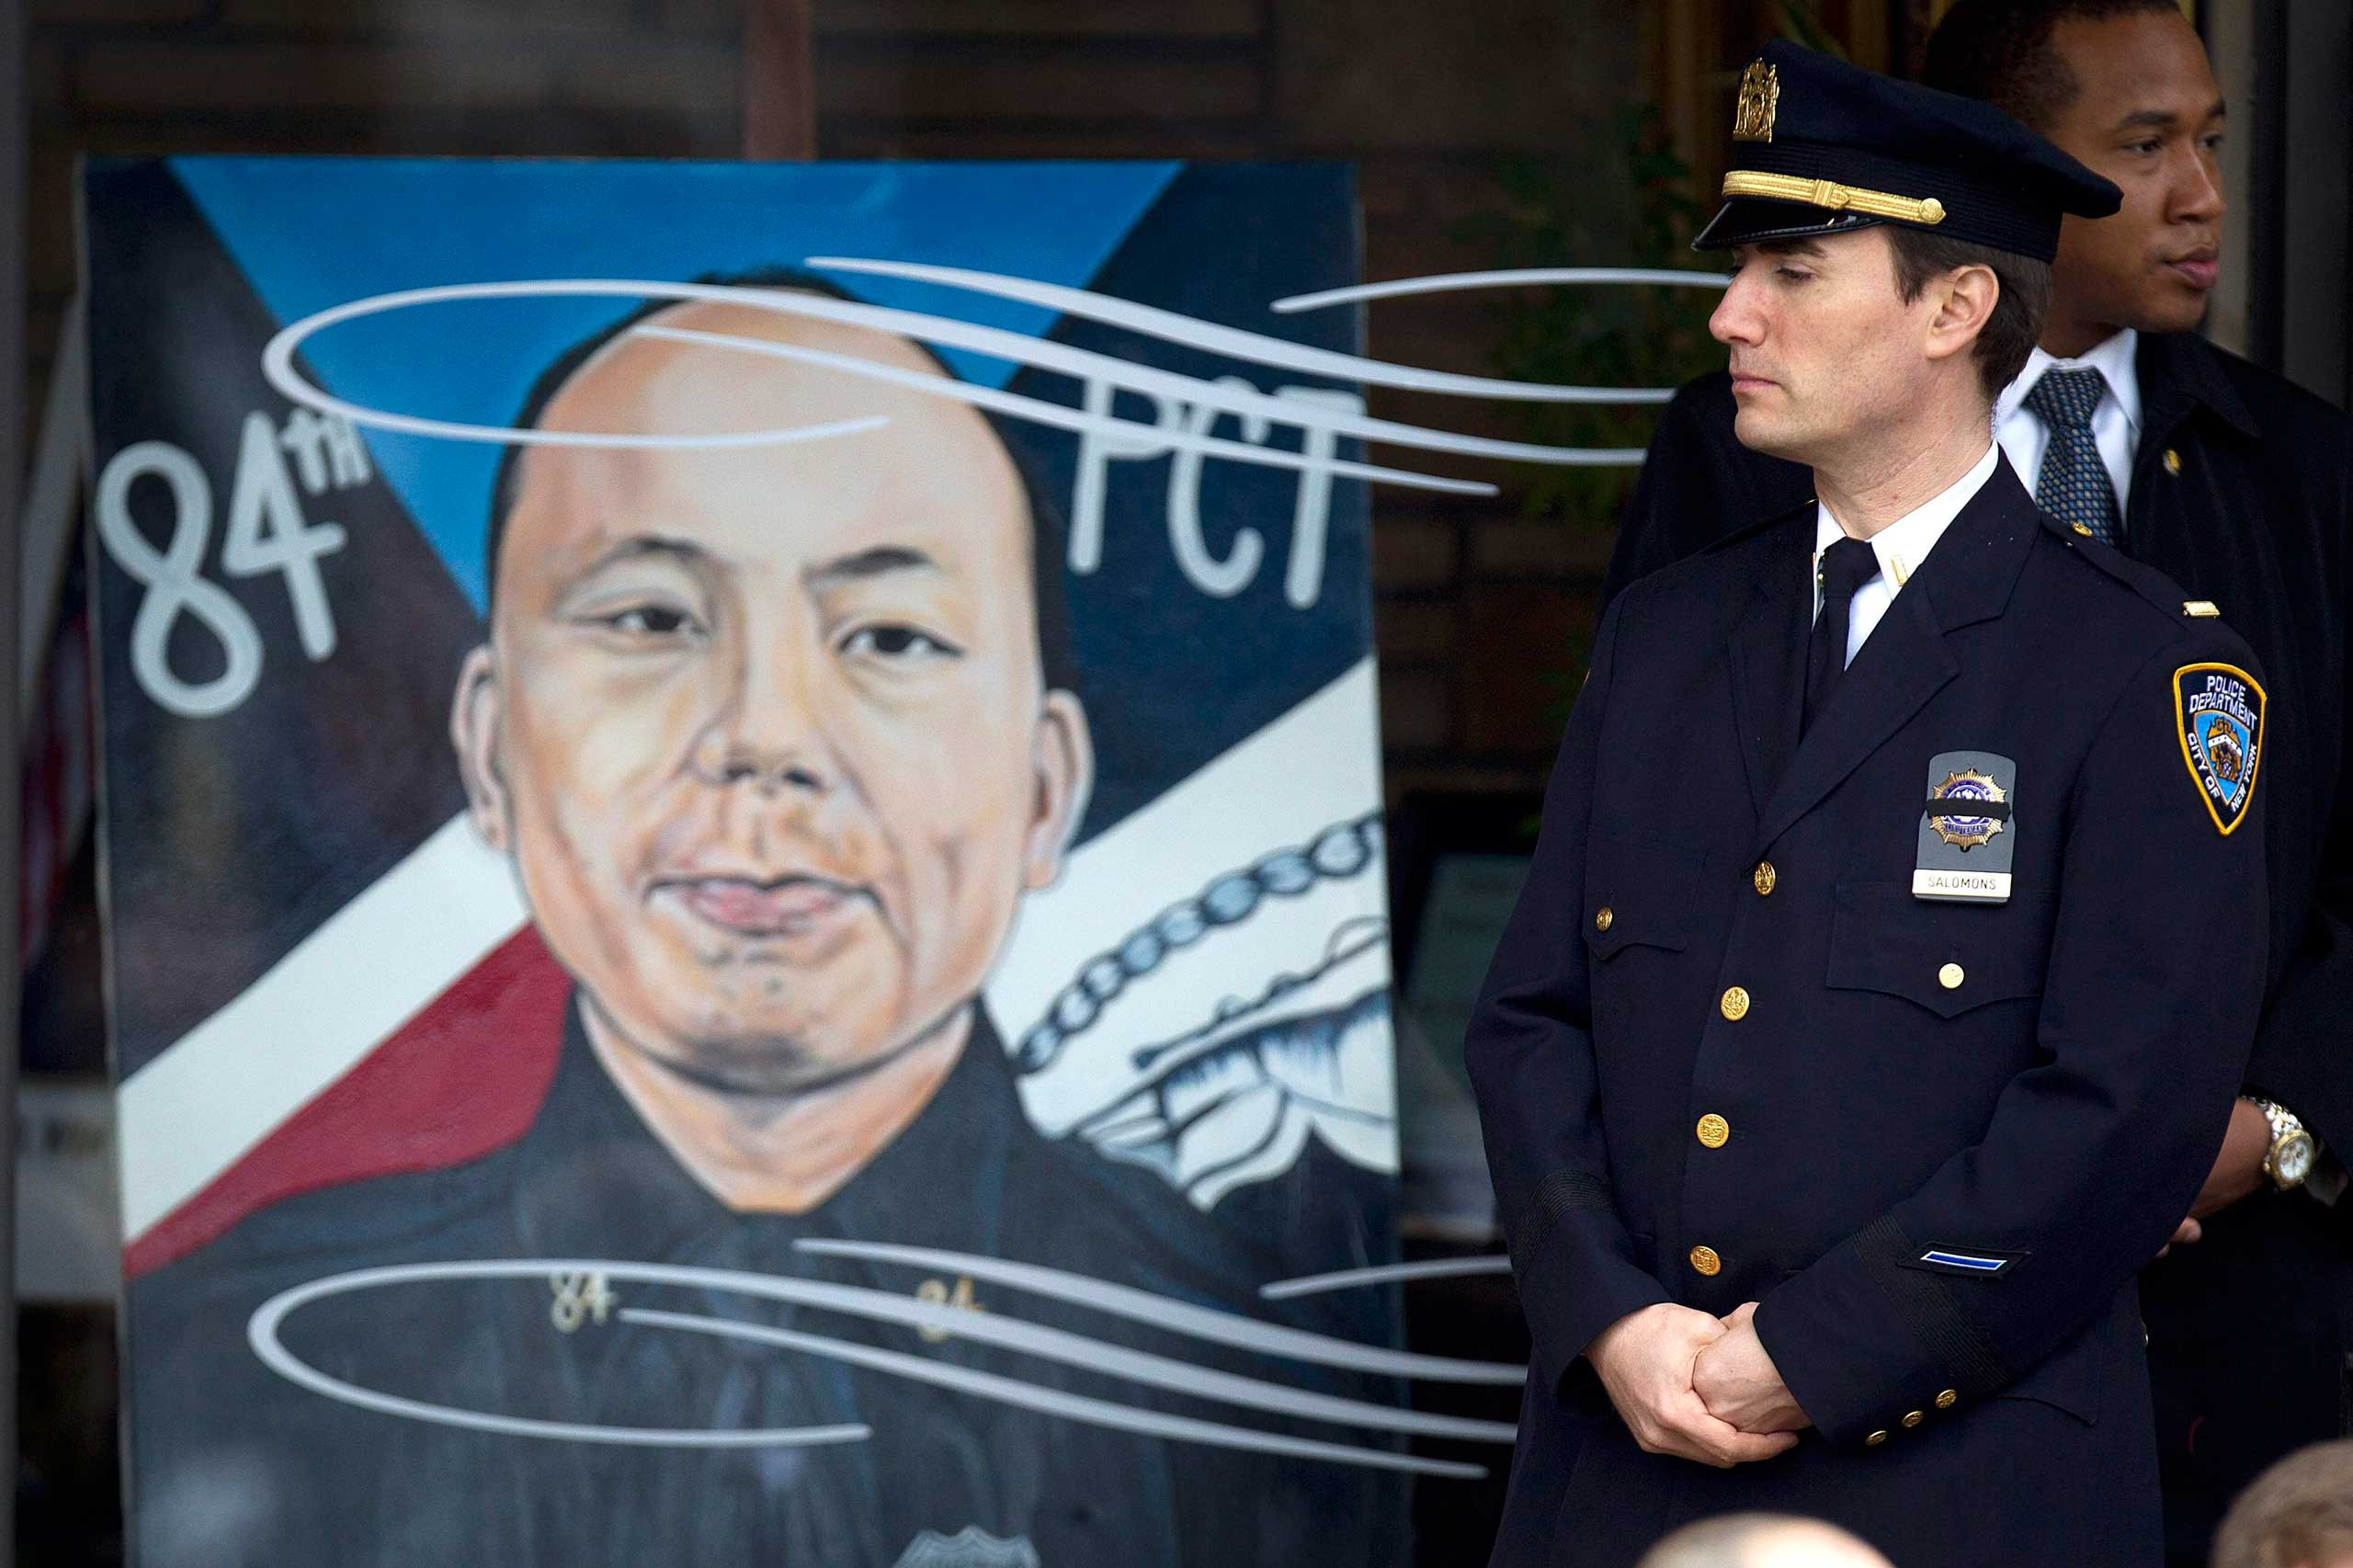 A policeman stands next to an image of slain New York Police Department officer Wenjian Liu during his funeral in the Brooklyn borough of New York on Jan. 4, 2015.